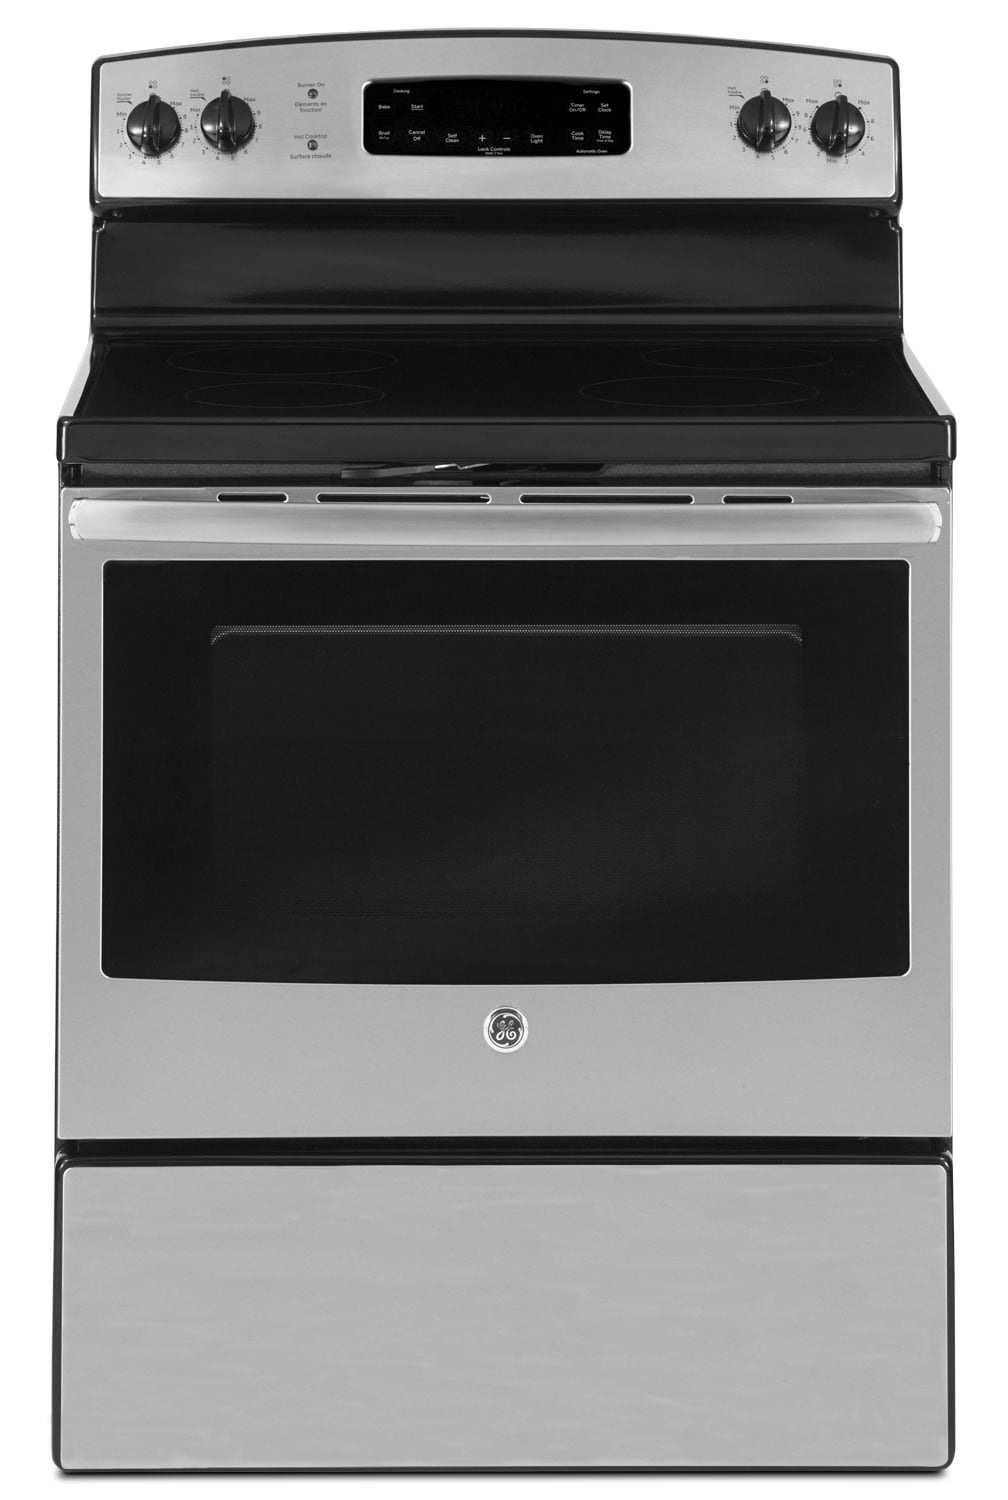 GE 5.0 Cu. Ft. Freestanding Smooth-Top Electric Range - Stainless Steel